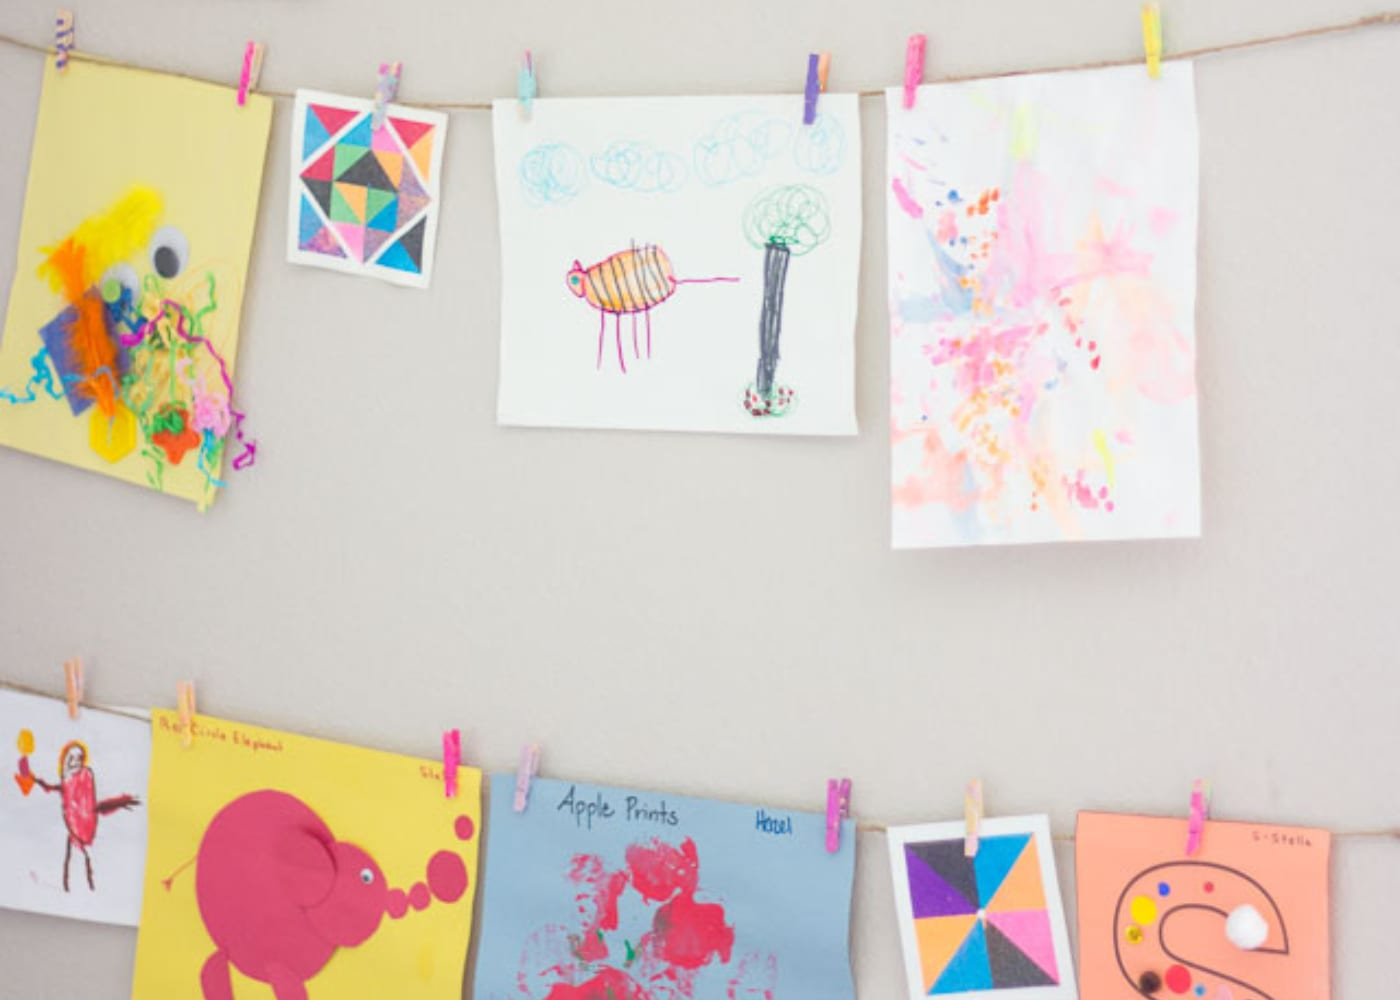 show art using pegs and string